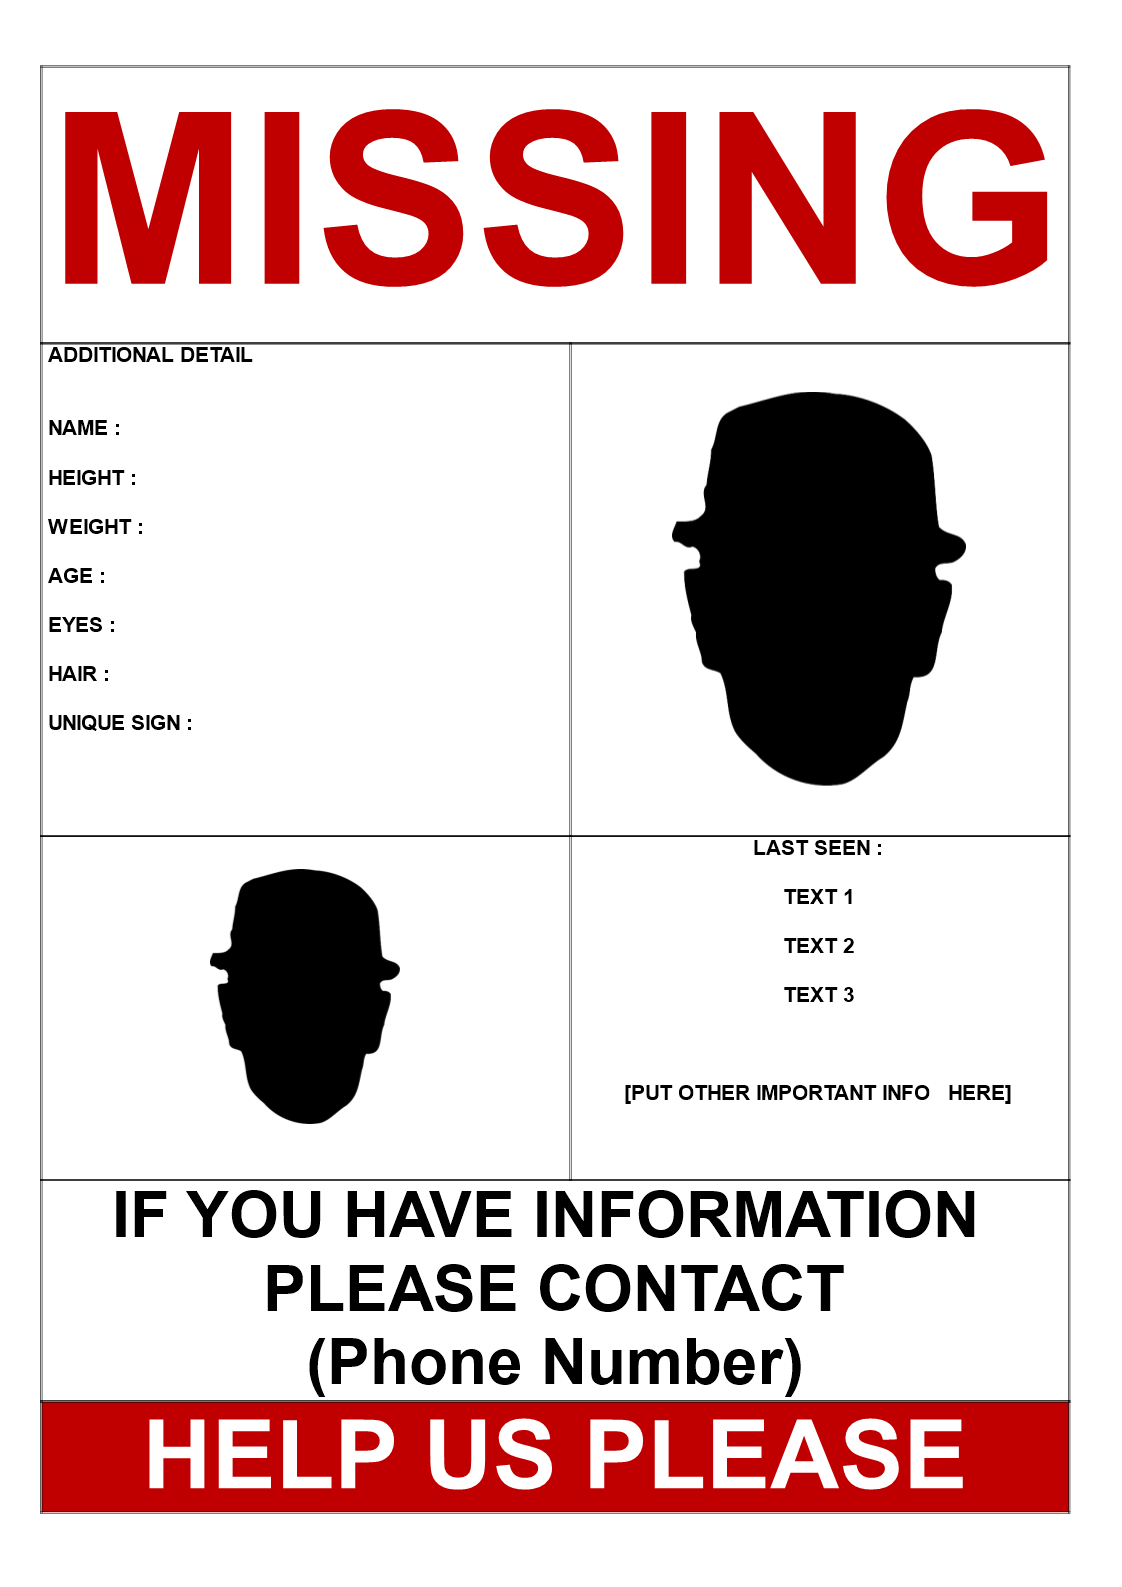 Missing Person Template 2 pictures Download this Find Missing – Missing Person Template